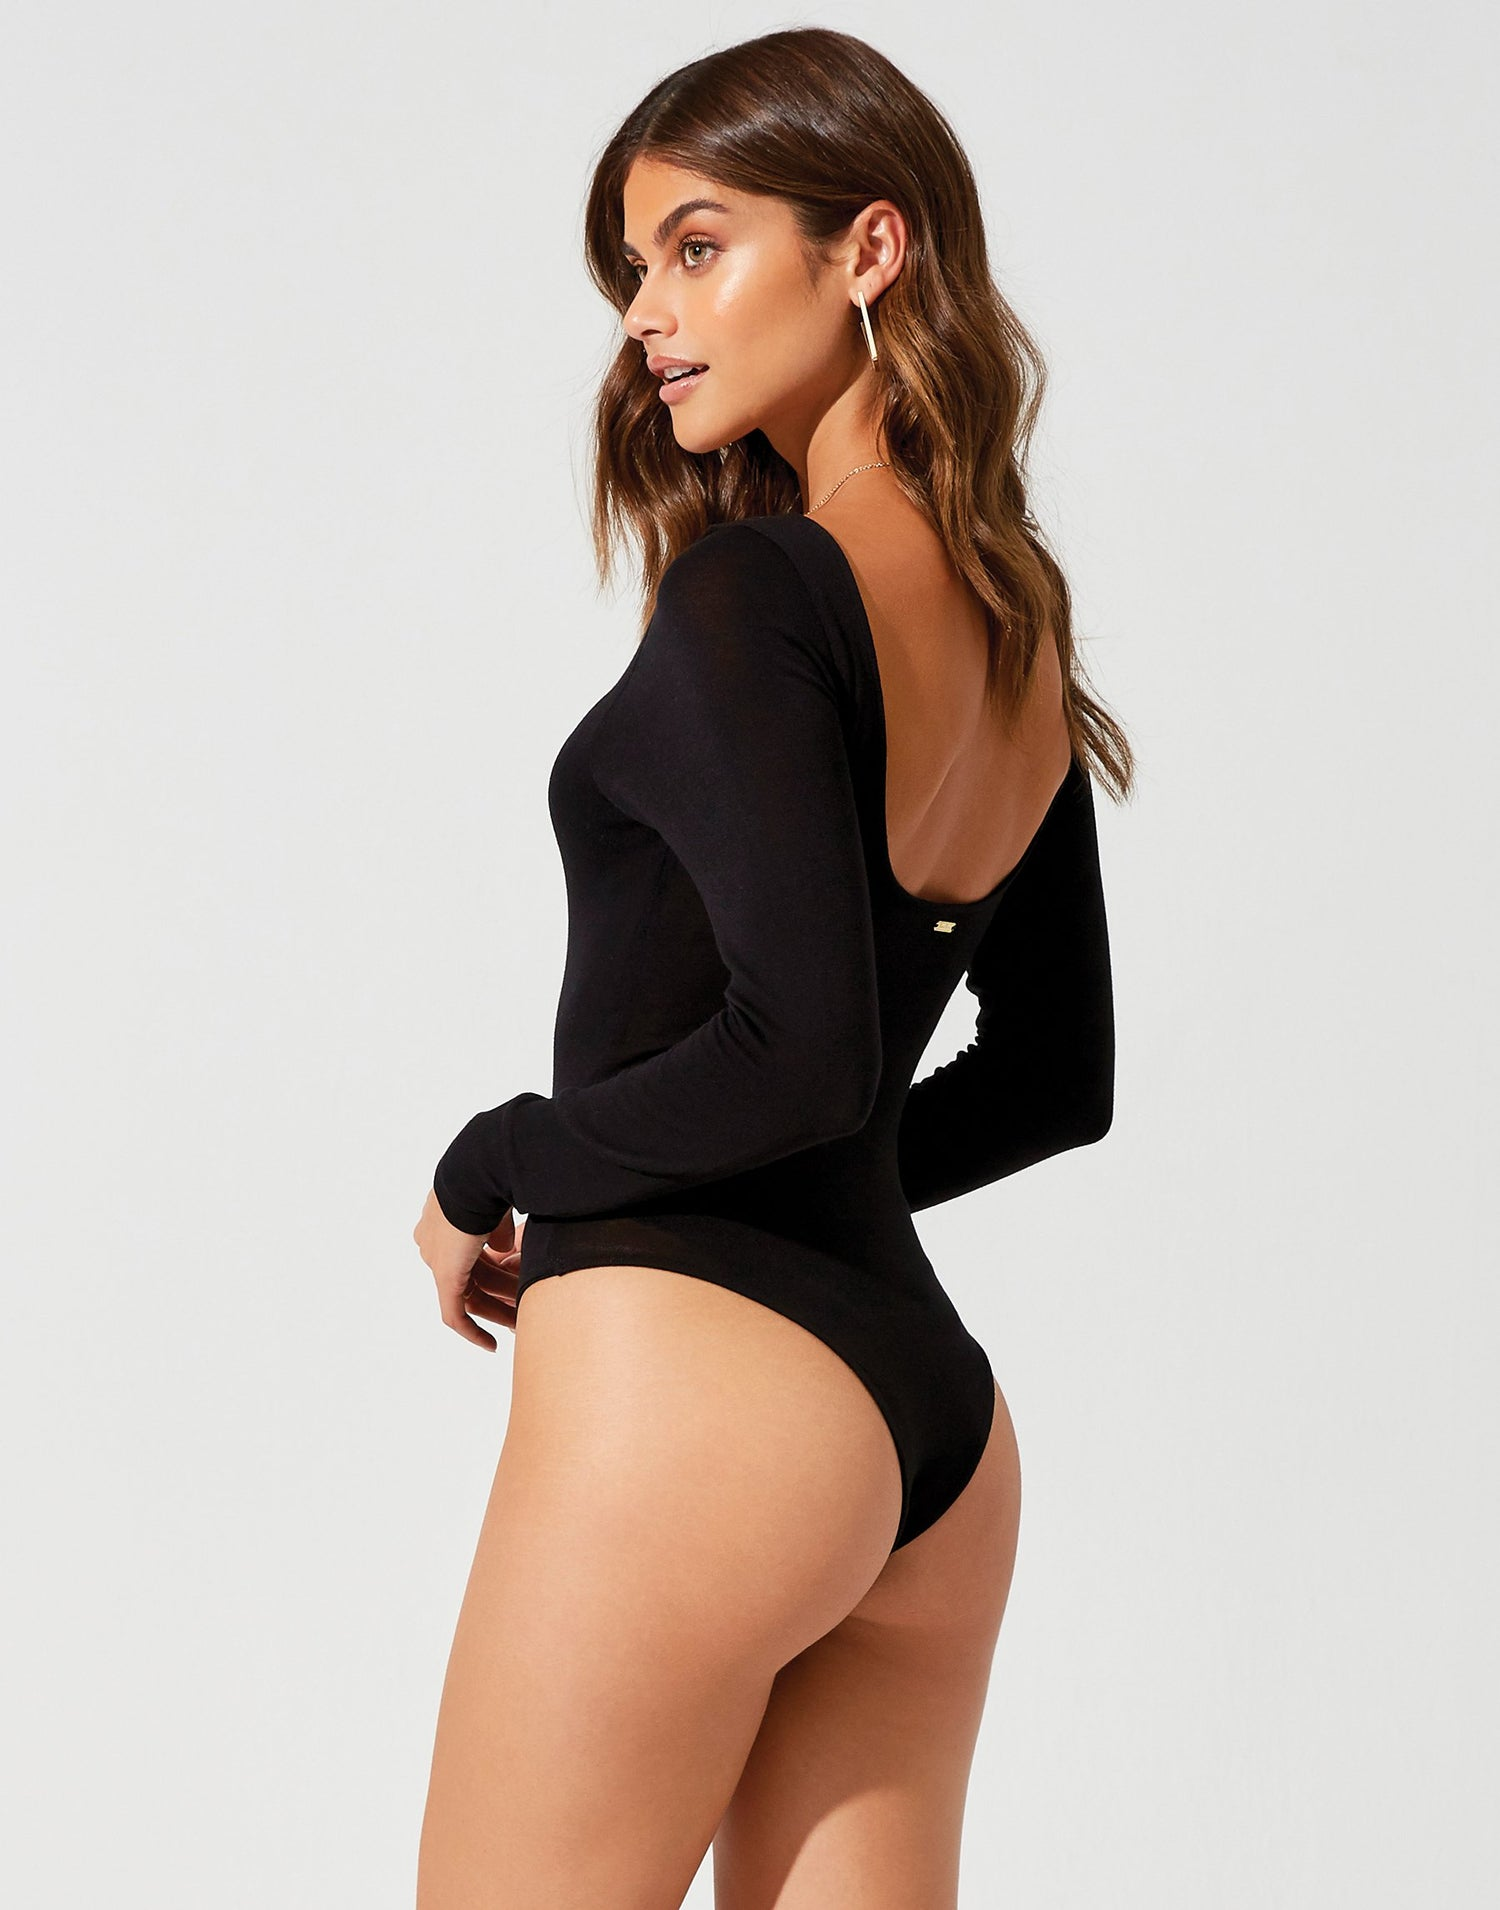 Lolo Bodysuit in Black with Open Back - back view